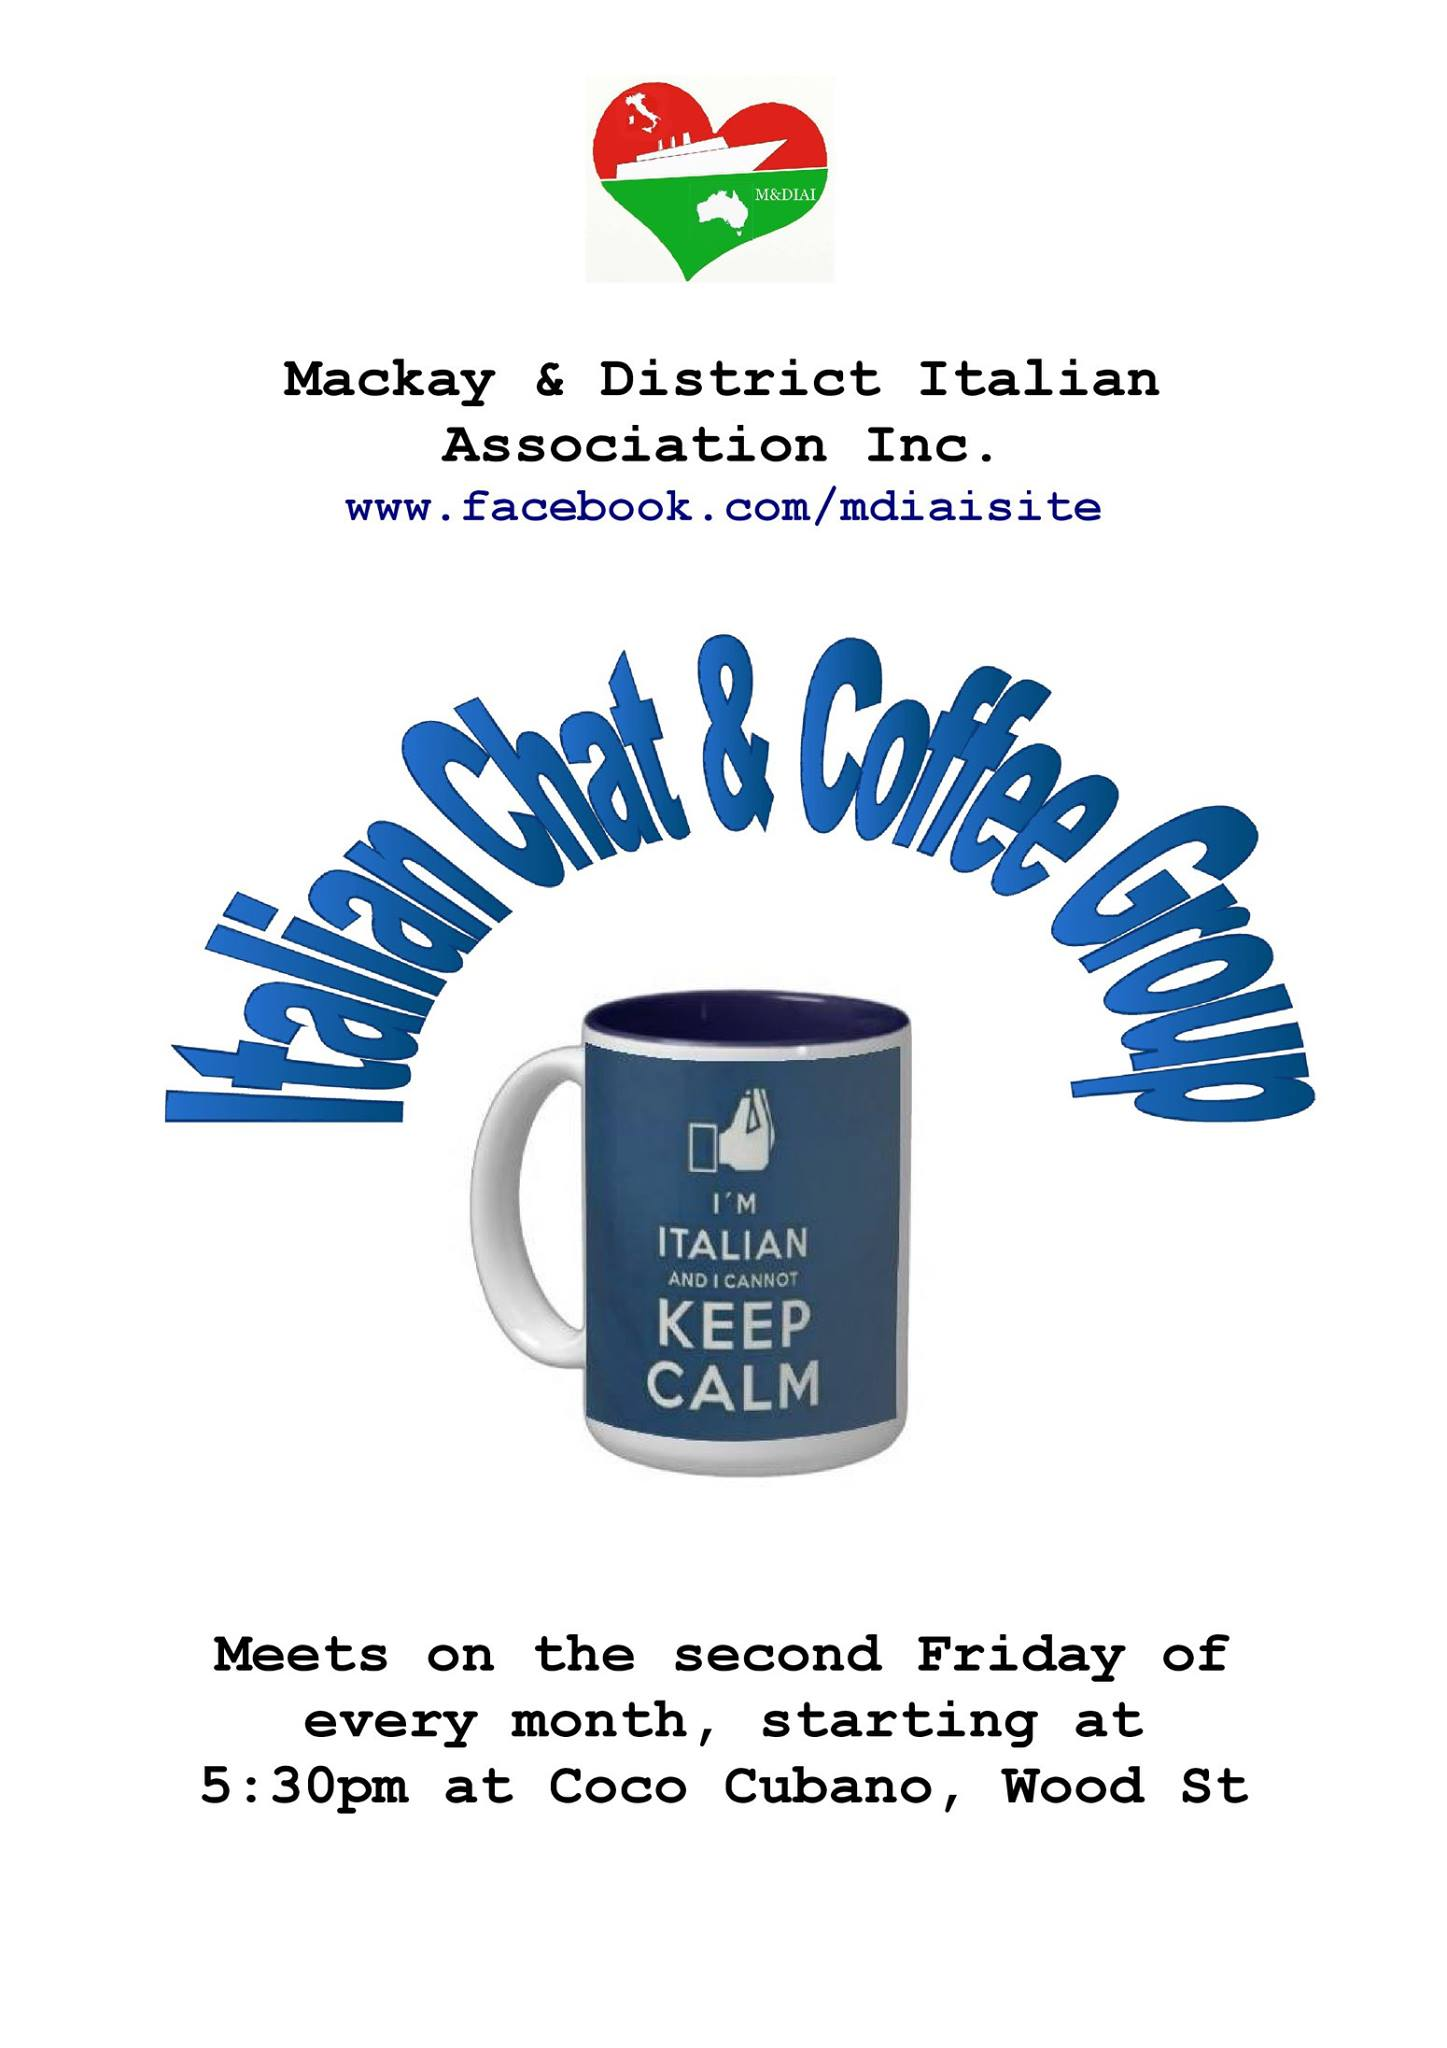 MDIAI Italian Chat and Coffee Group